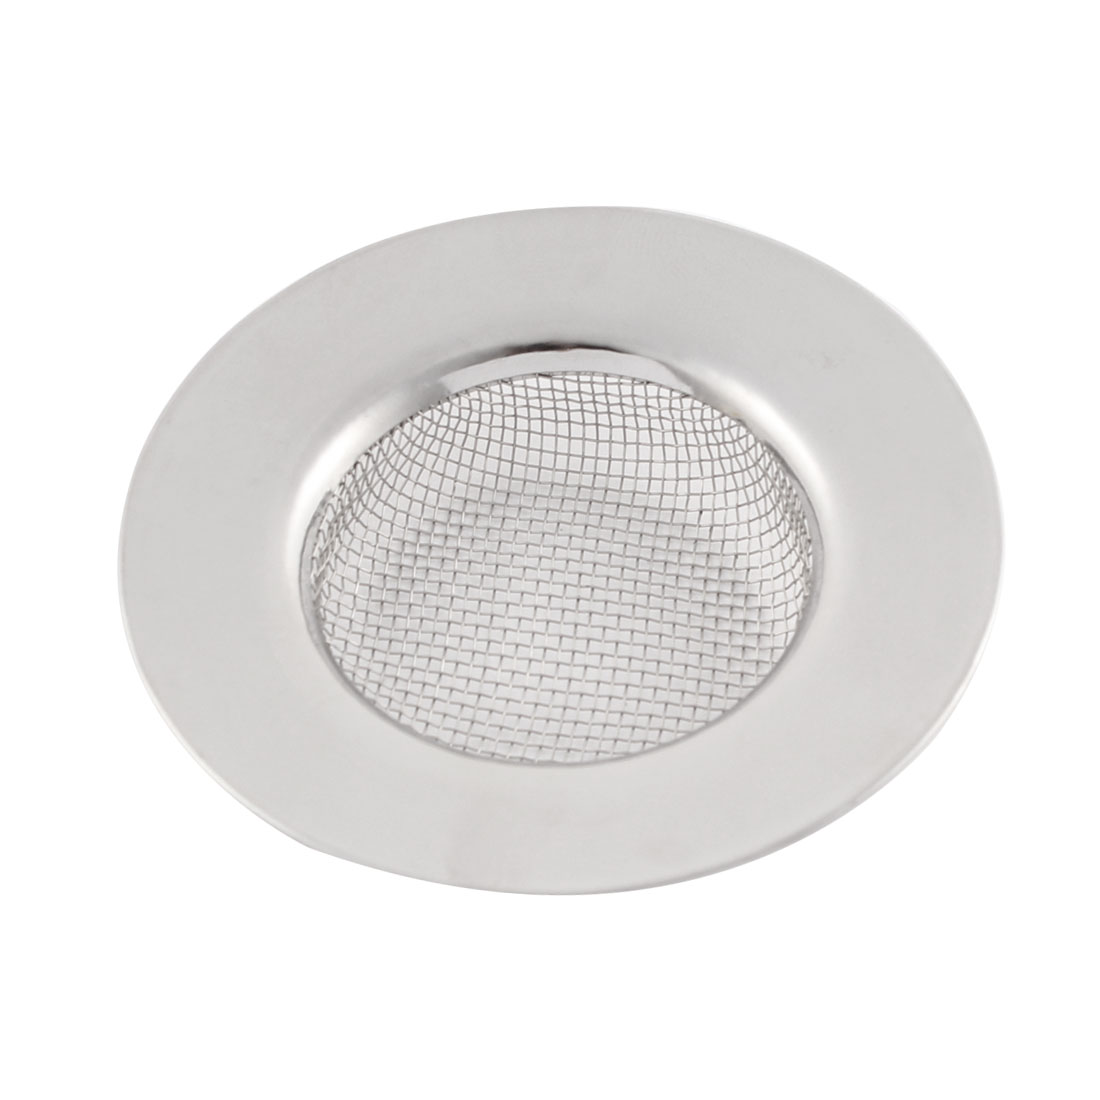 75mm Diameter Bath Water Drainage Stopper Disposal Sink Mesh Basin Strainer